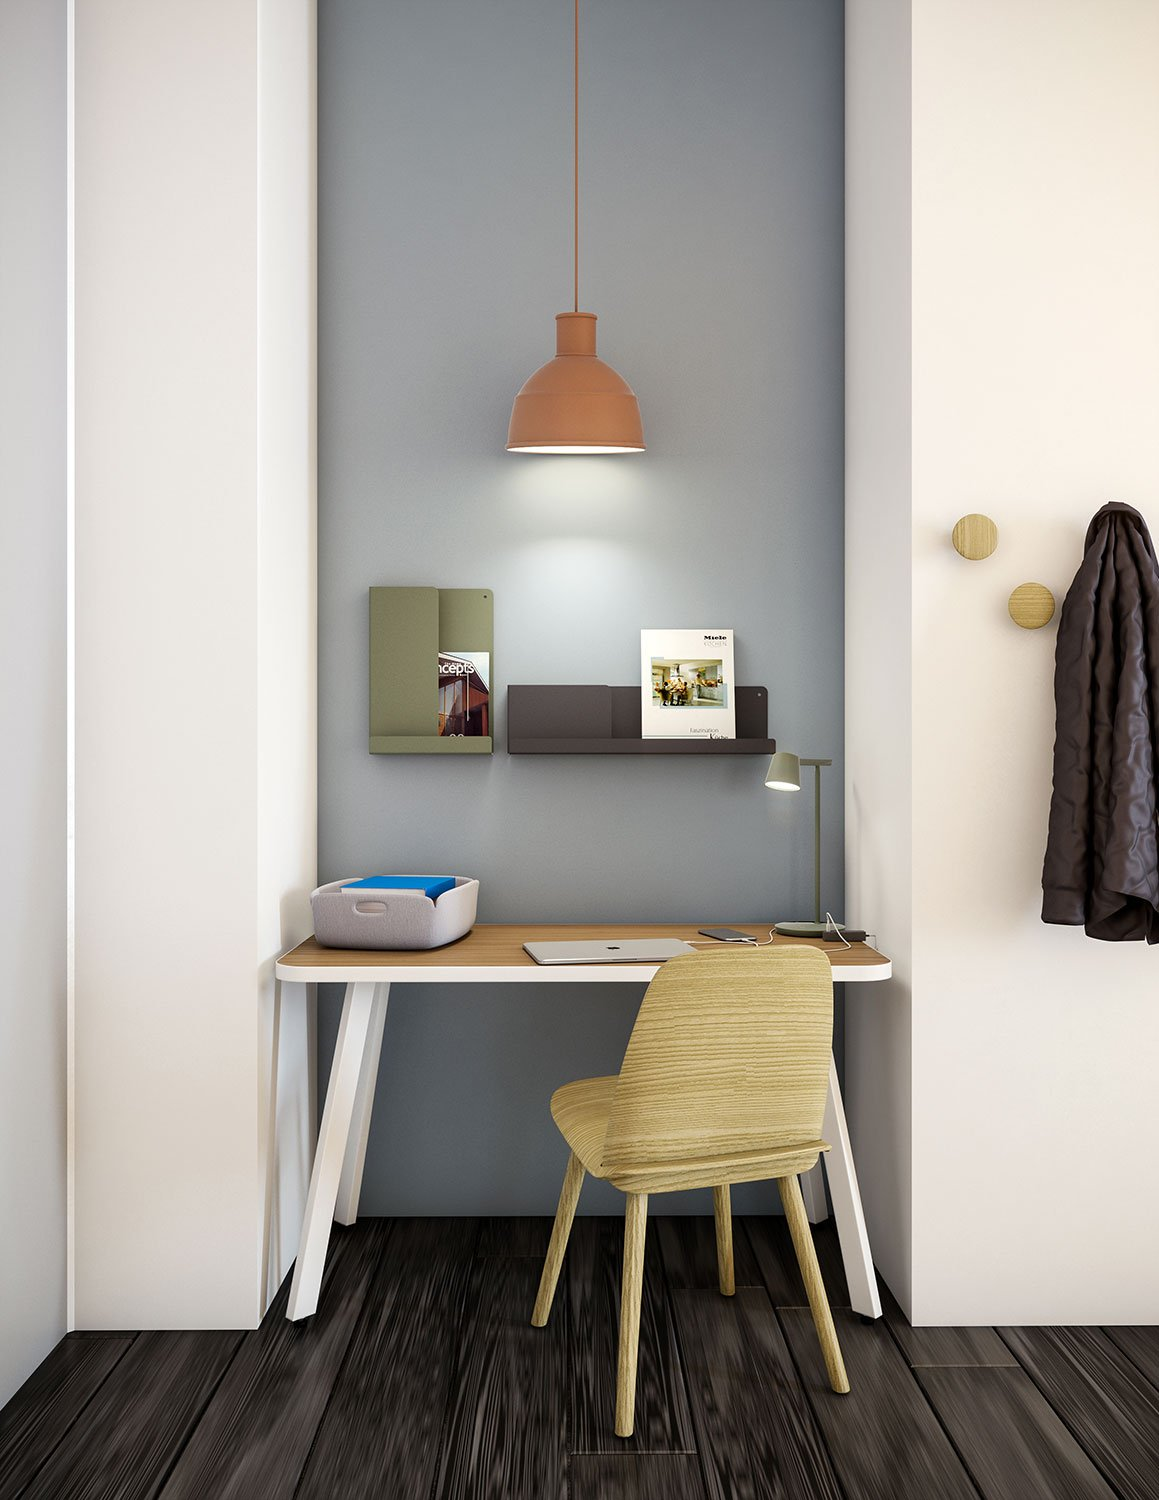 Rockwwell Unscripted Easy Tables with Muuto Nerd Chair Unfold Pendant and accessories Work from Home Inspiration from Knoll and Muuto